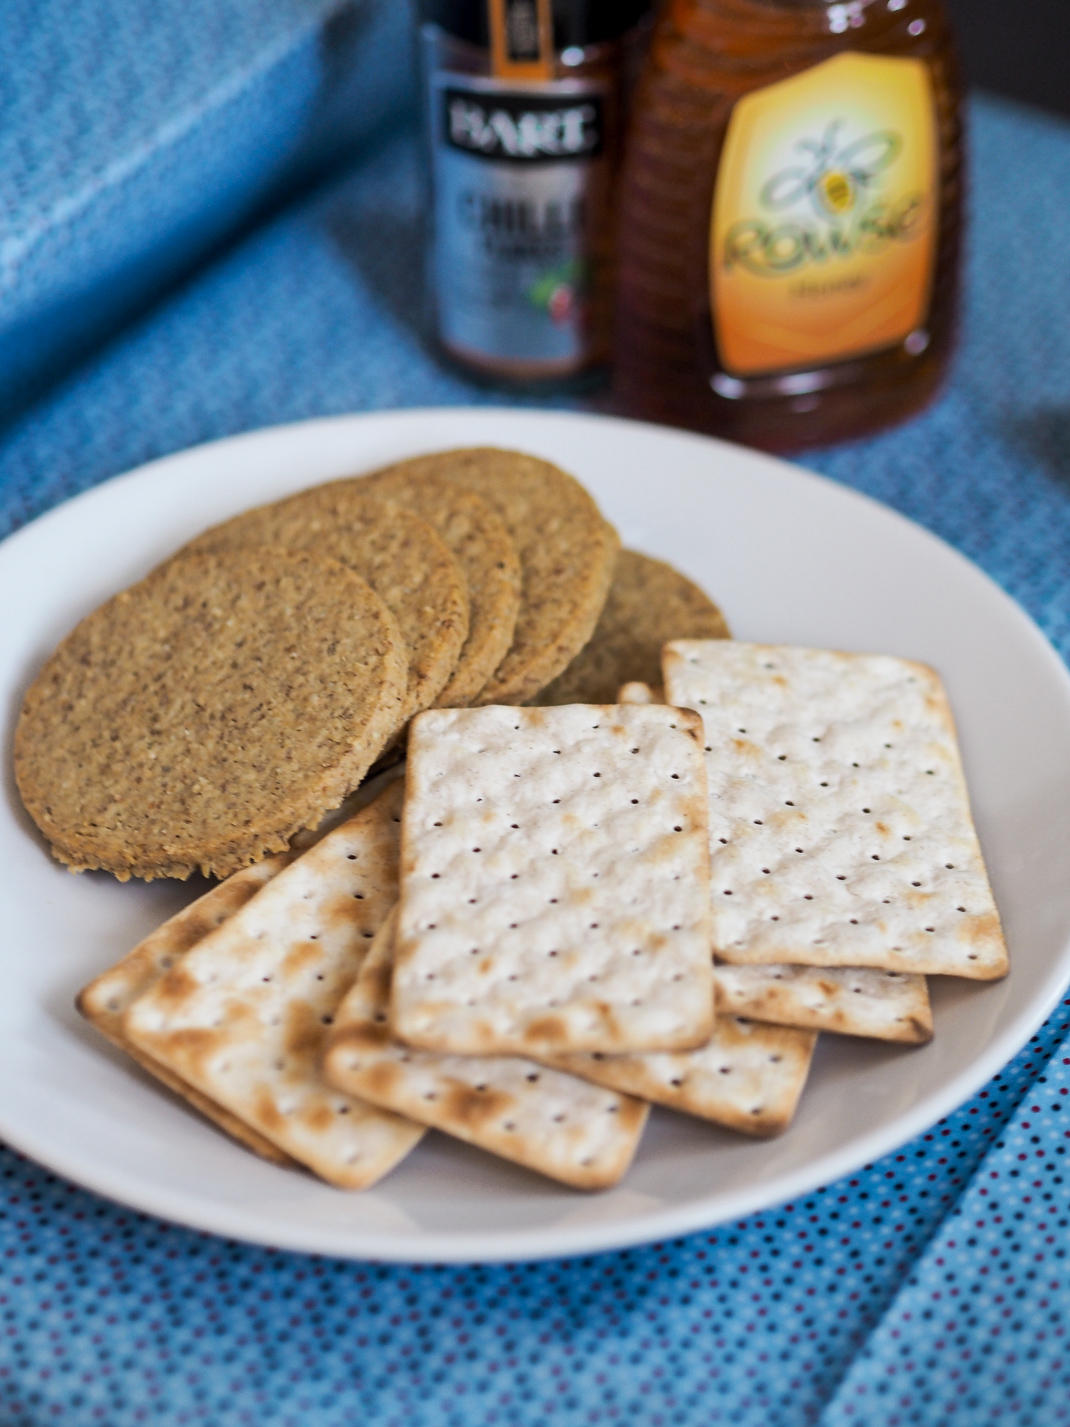 crackers and oat cakes